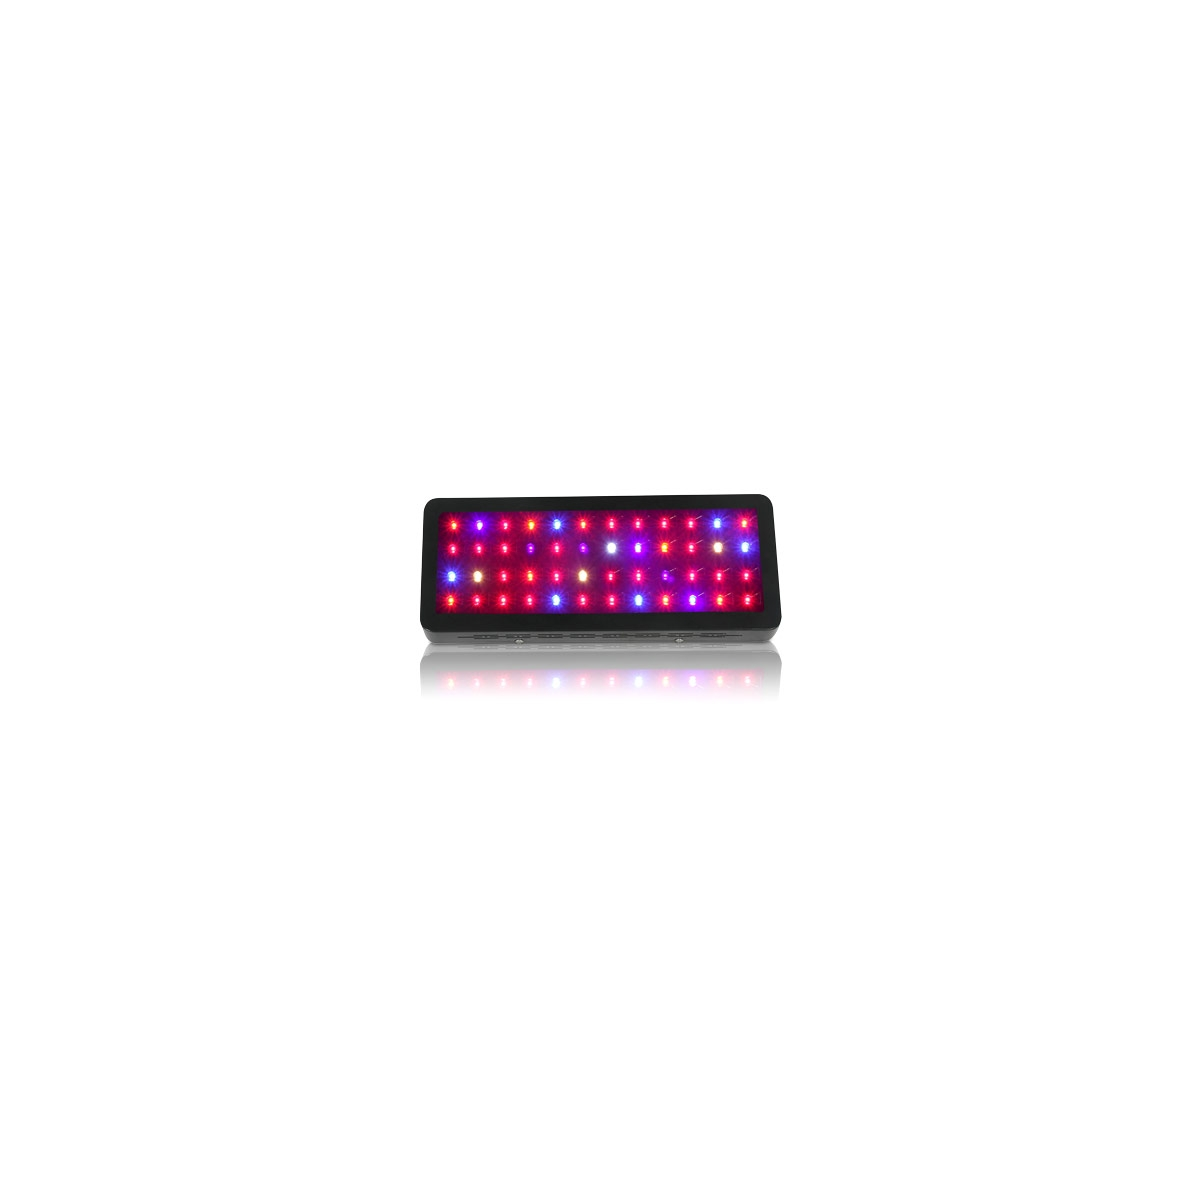 eclairage led panneau led 144w 48 leds x 3w avec switch florastar hydrozone. Black Bedroom Furniture Sets. Home Design Ideas